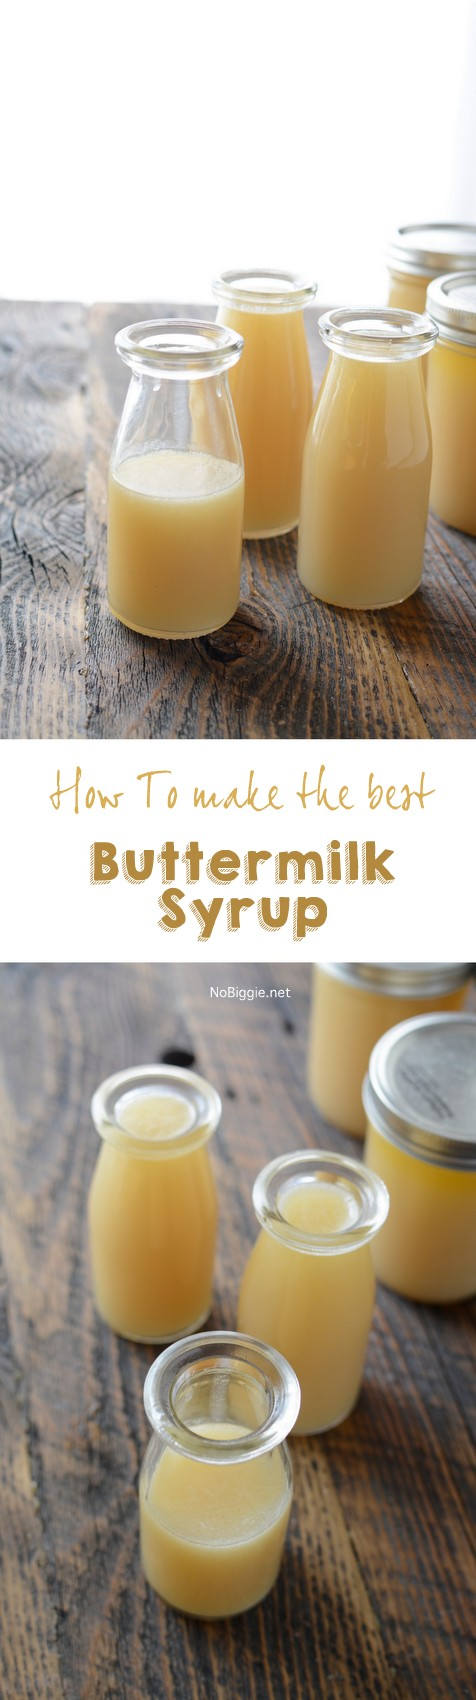 how to make the best buttermilk syrup | NoBiggie.net